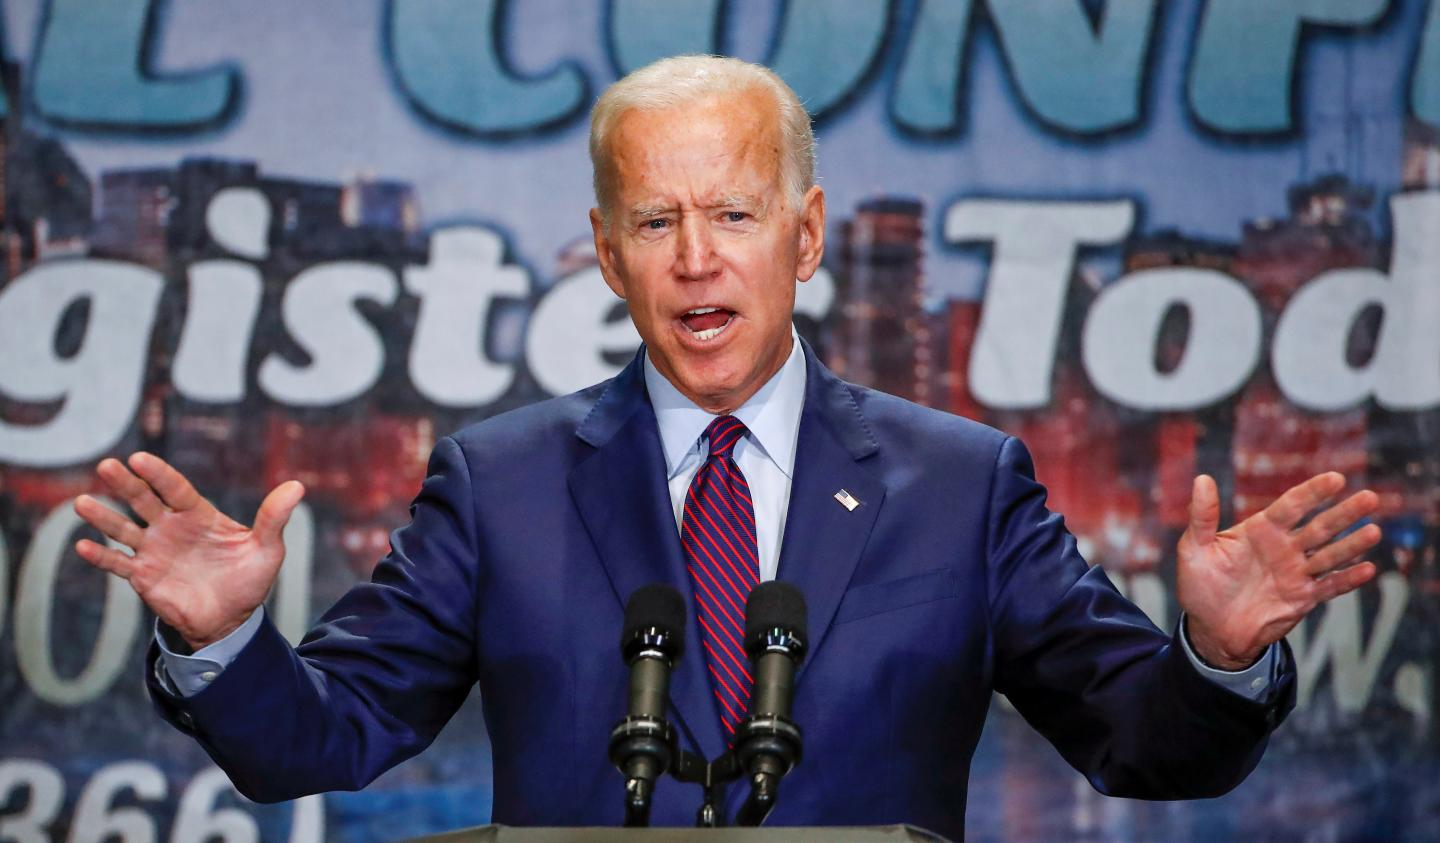 Biden's Flip-Flops on China